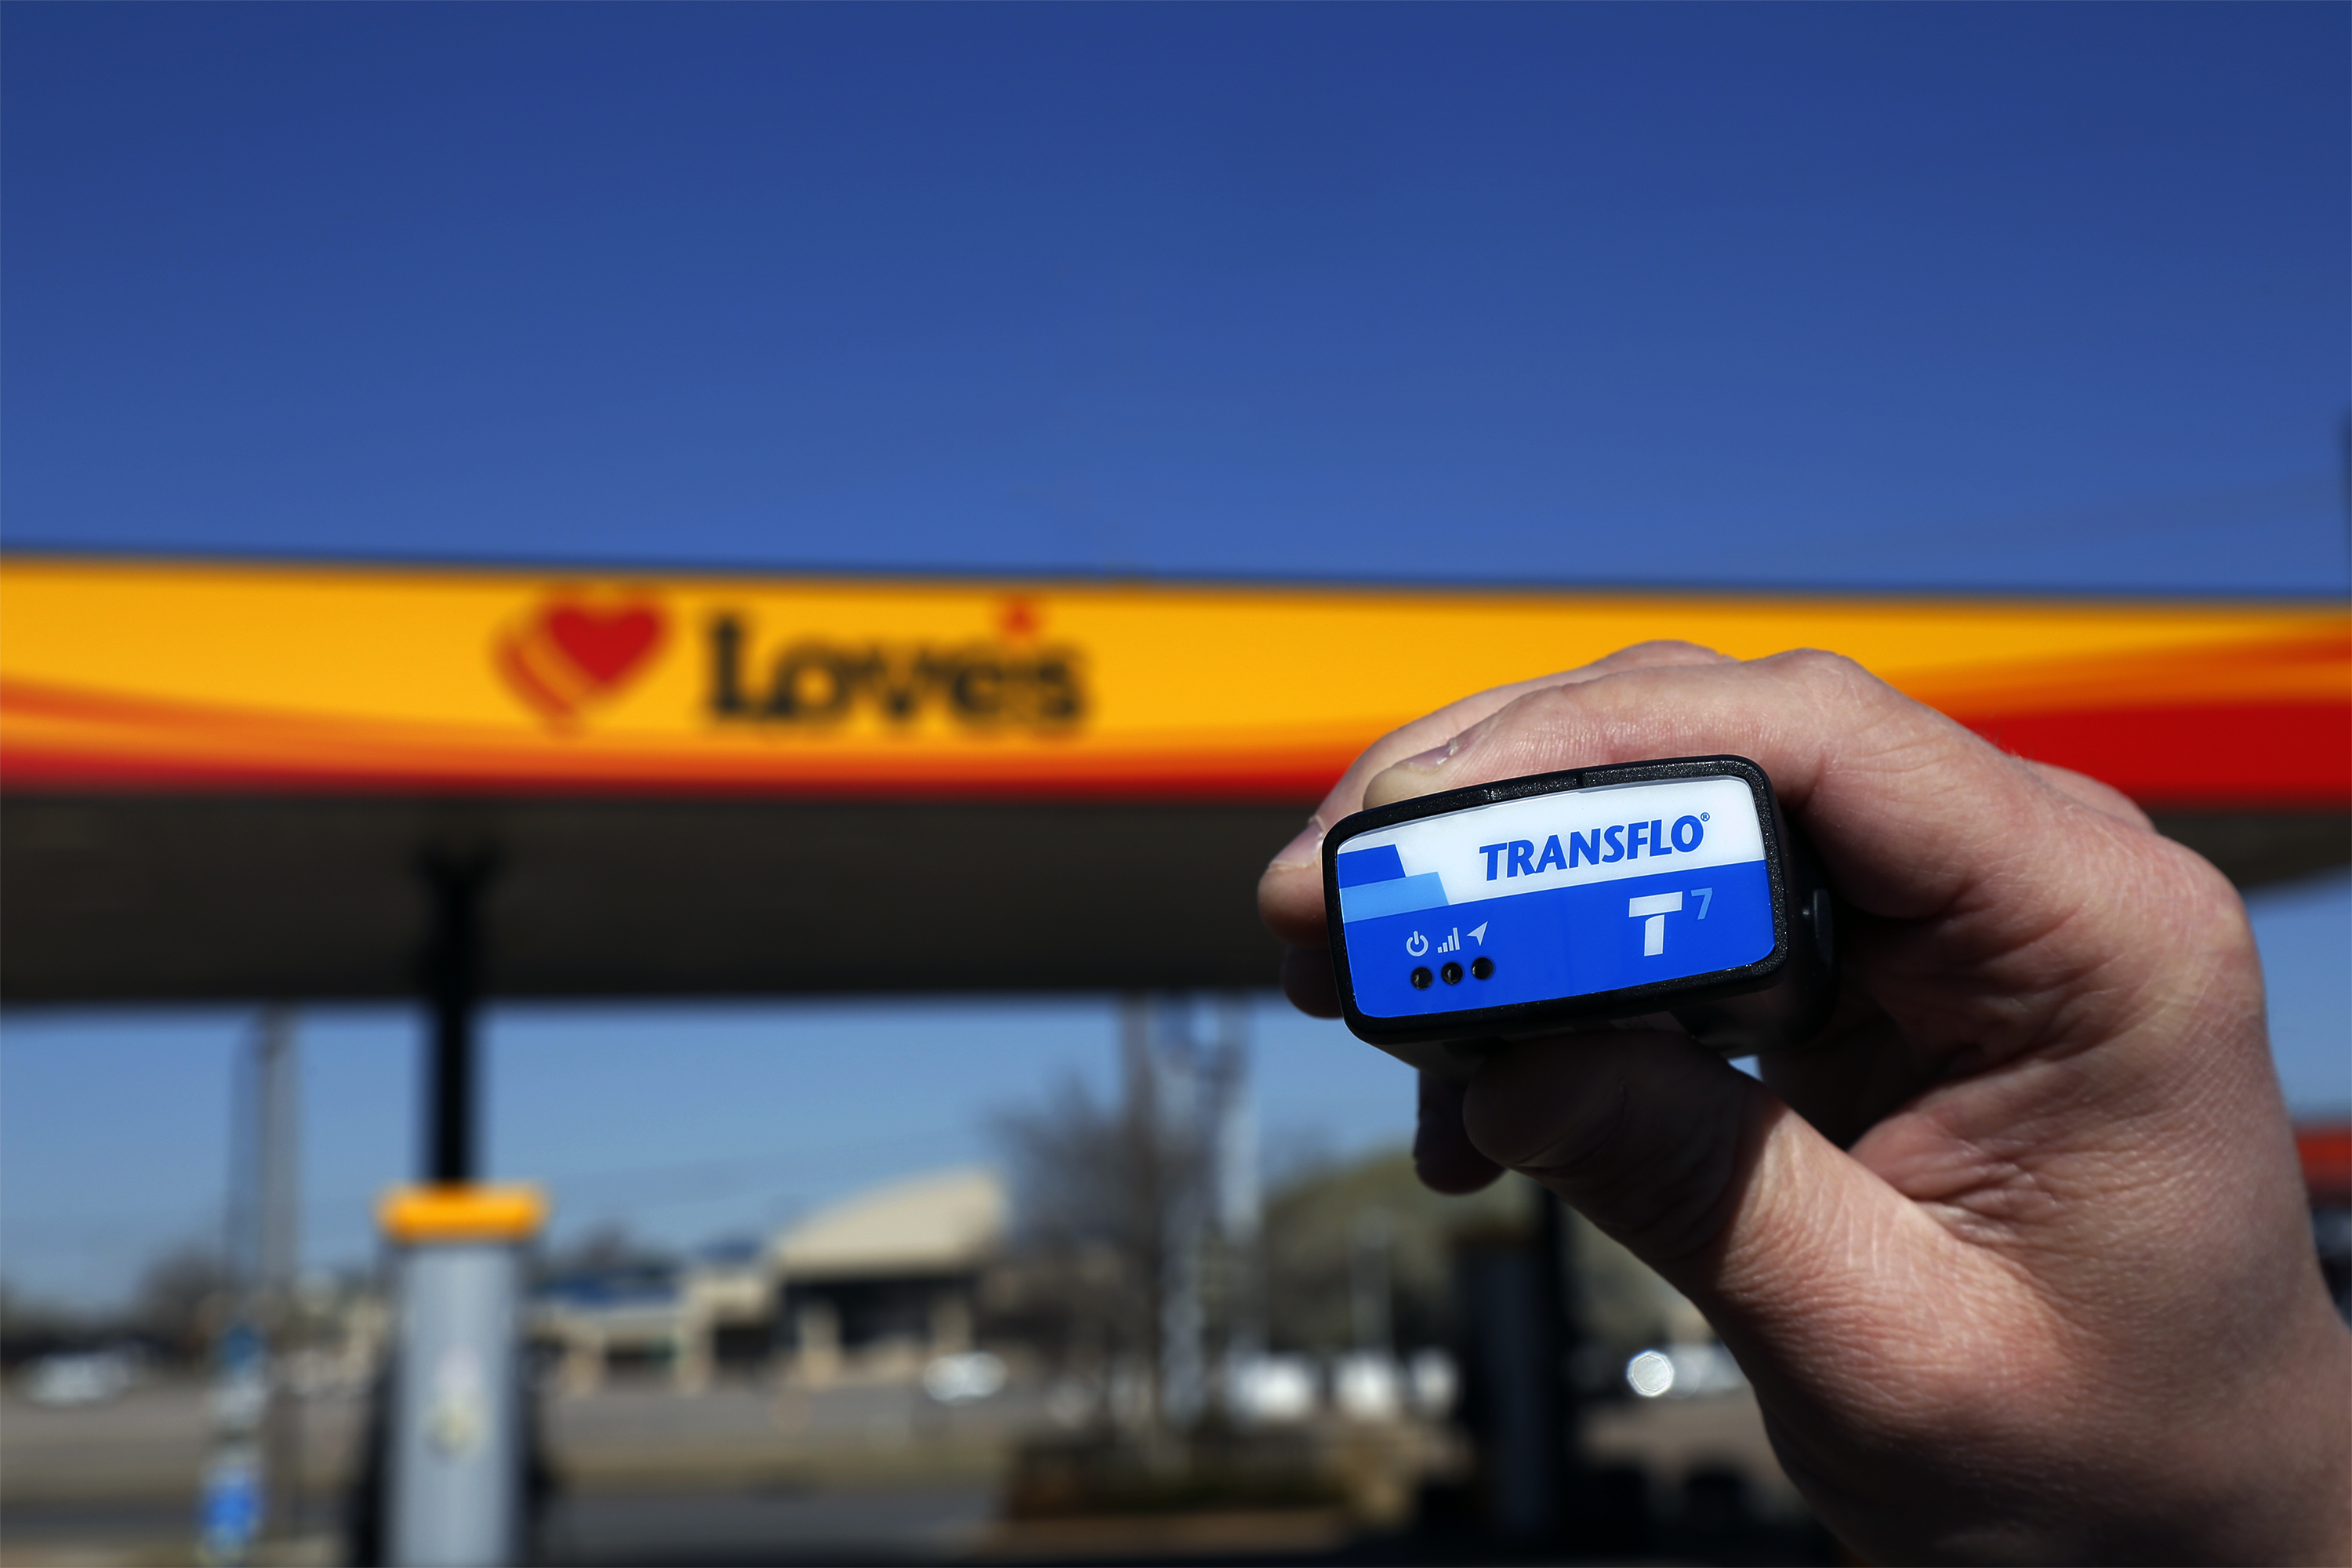 Transflo ELD T7 at Love's (Photo: Business Wire)